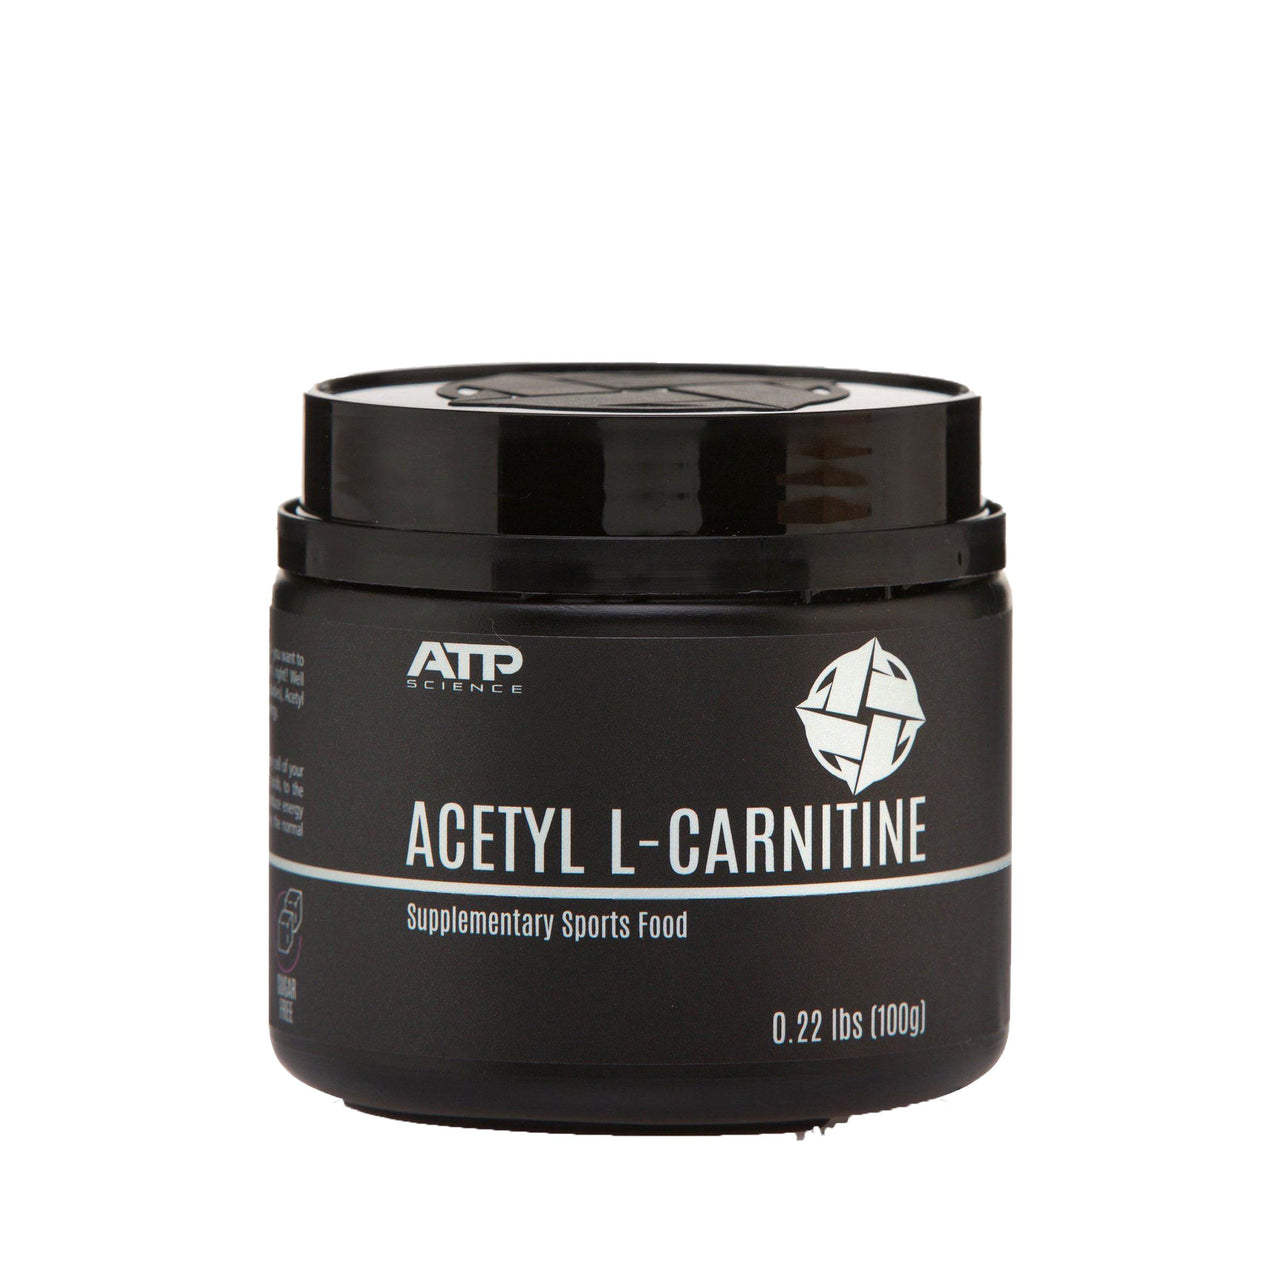 ATP Science L-Carnitine 100g, ATP Science - Nutrition Co Australia